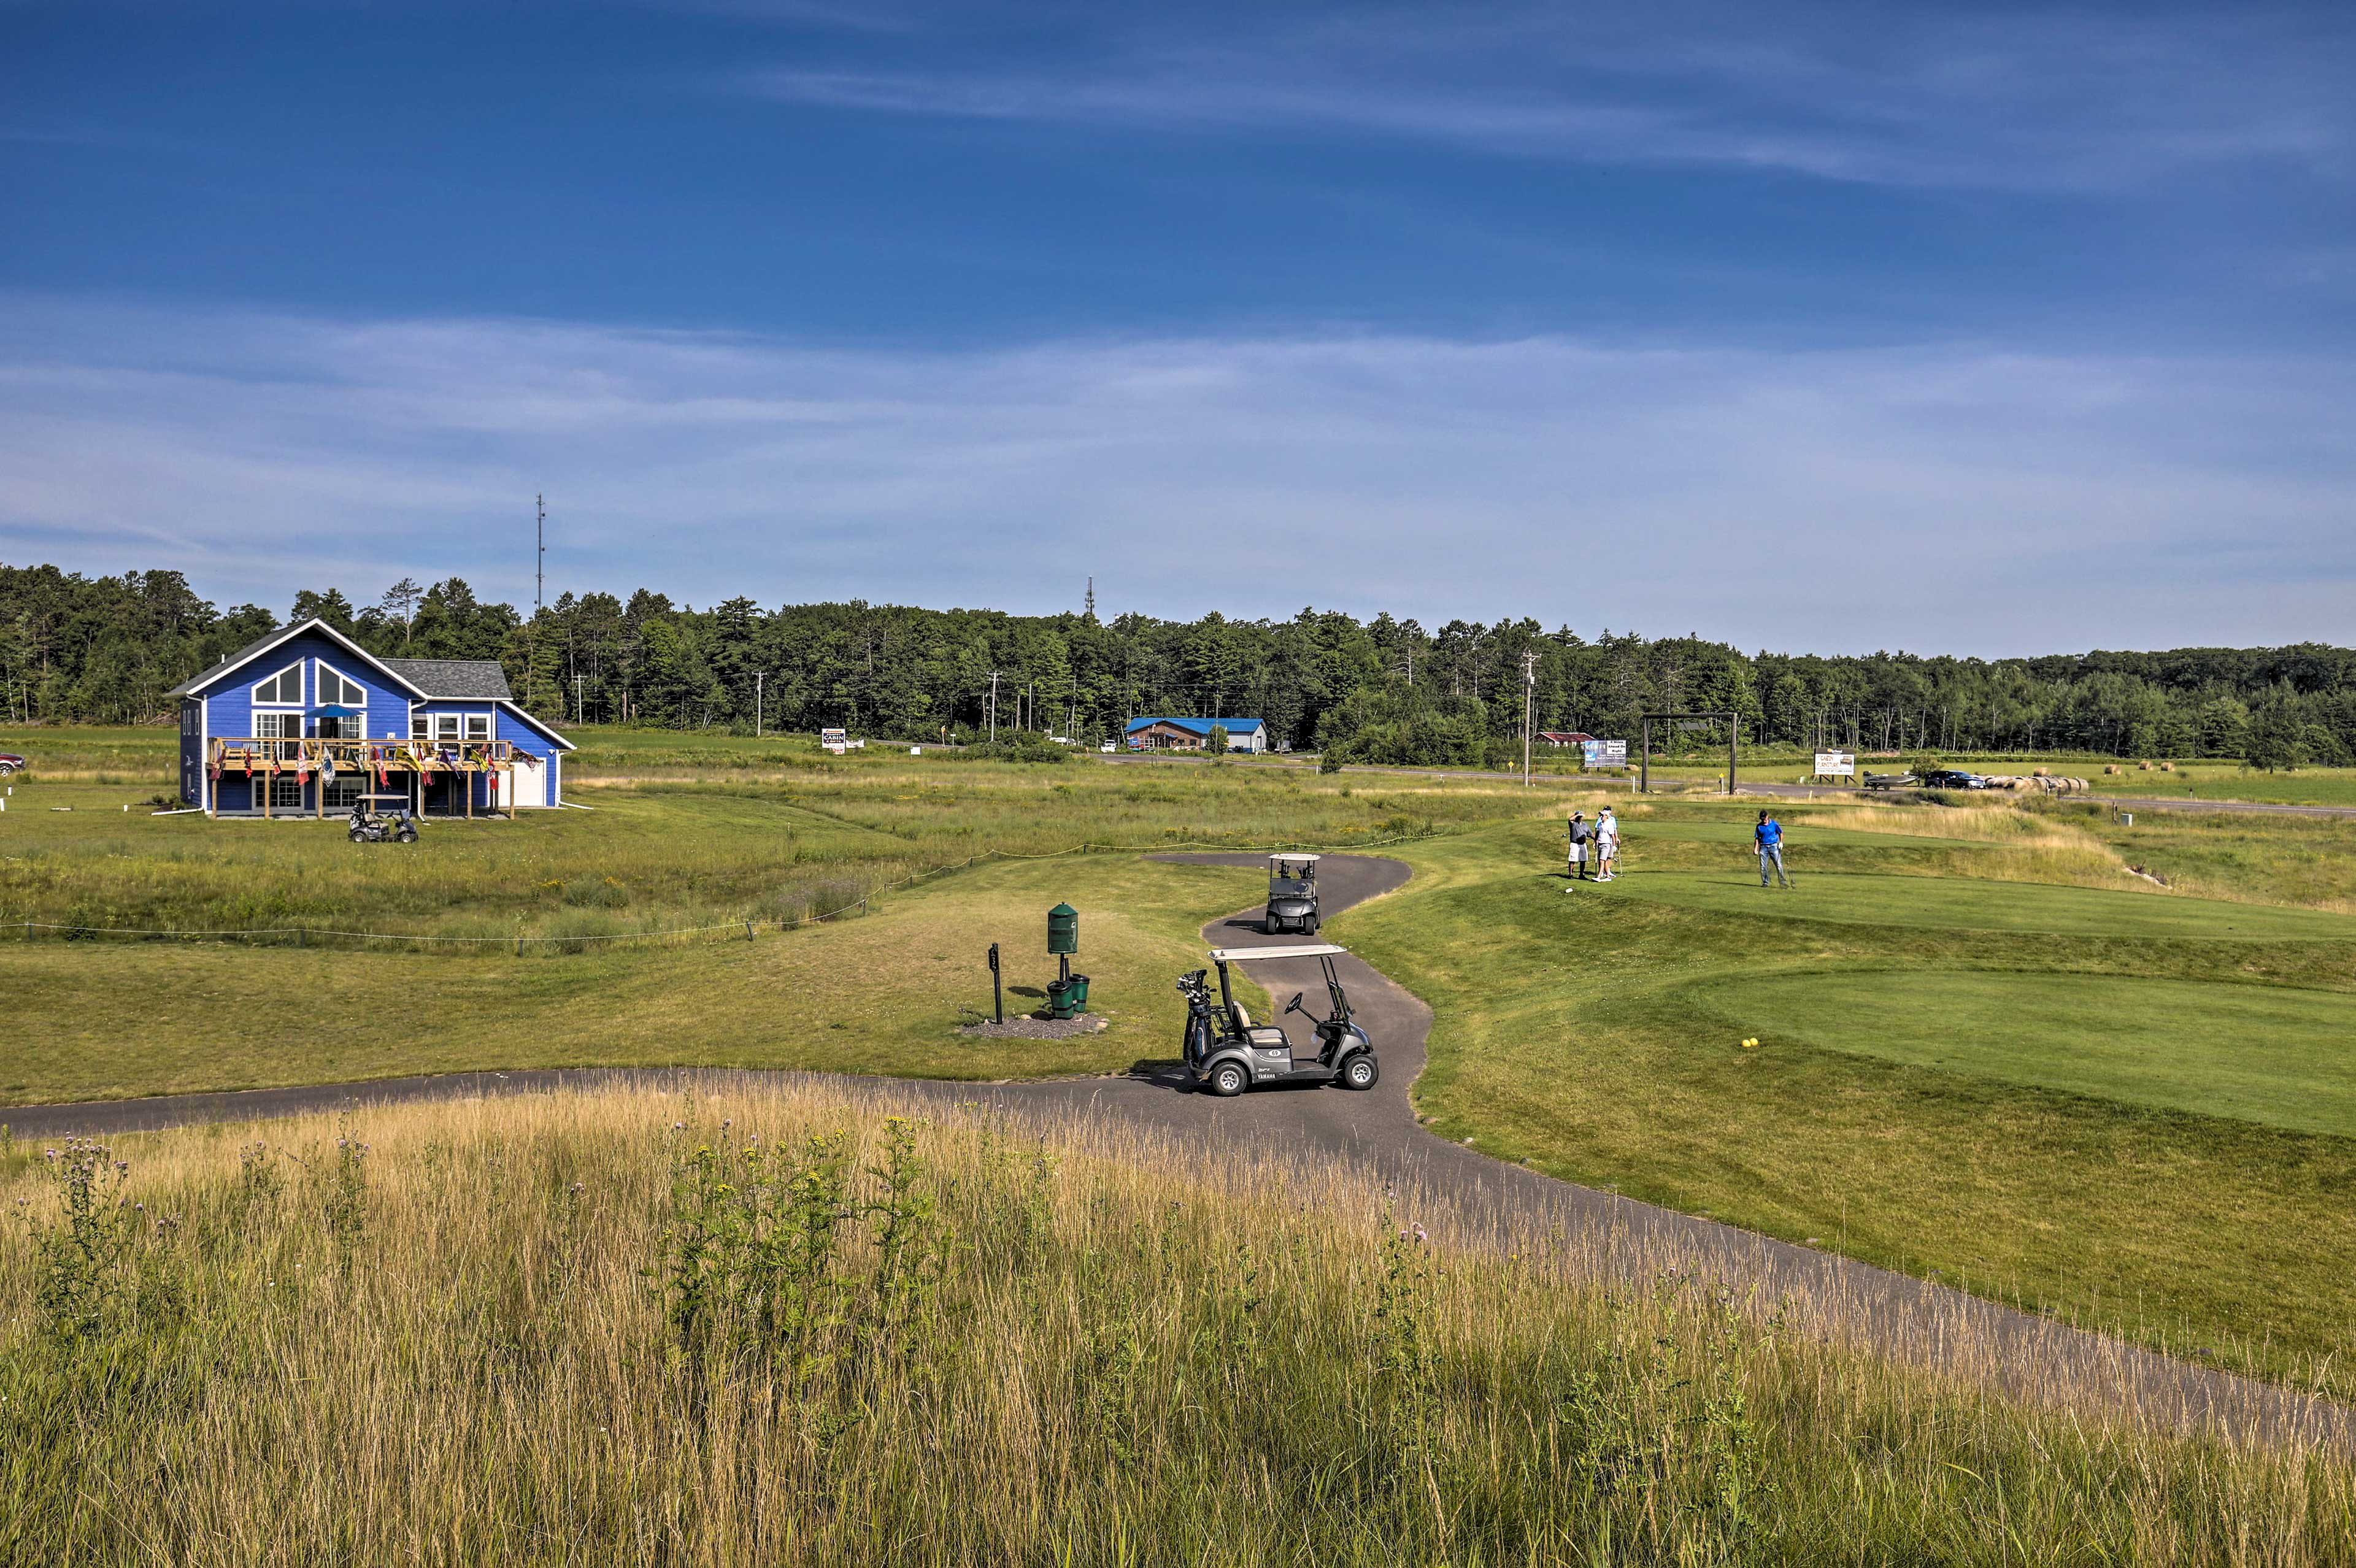 Tee off for a day on the fairways.